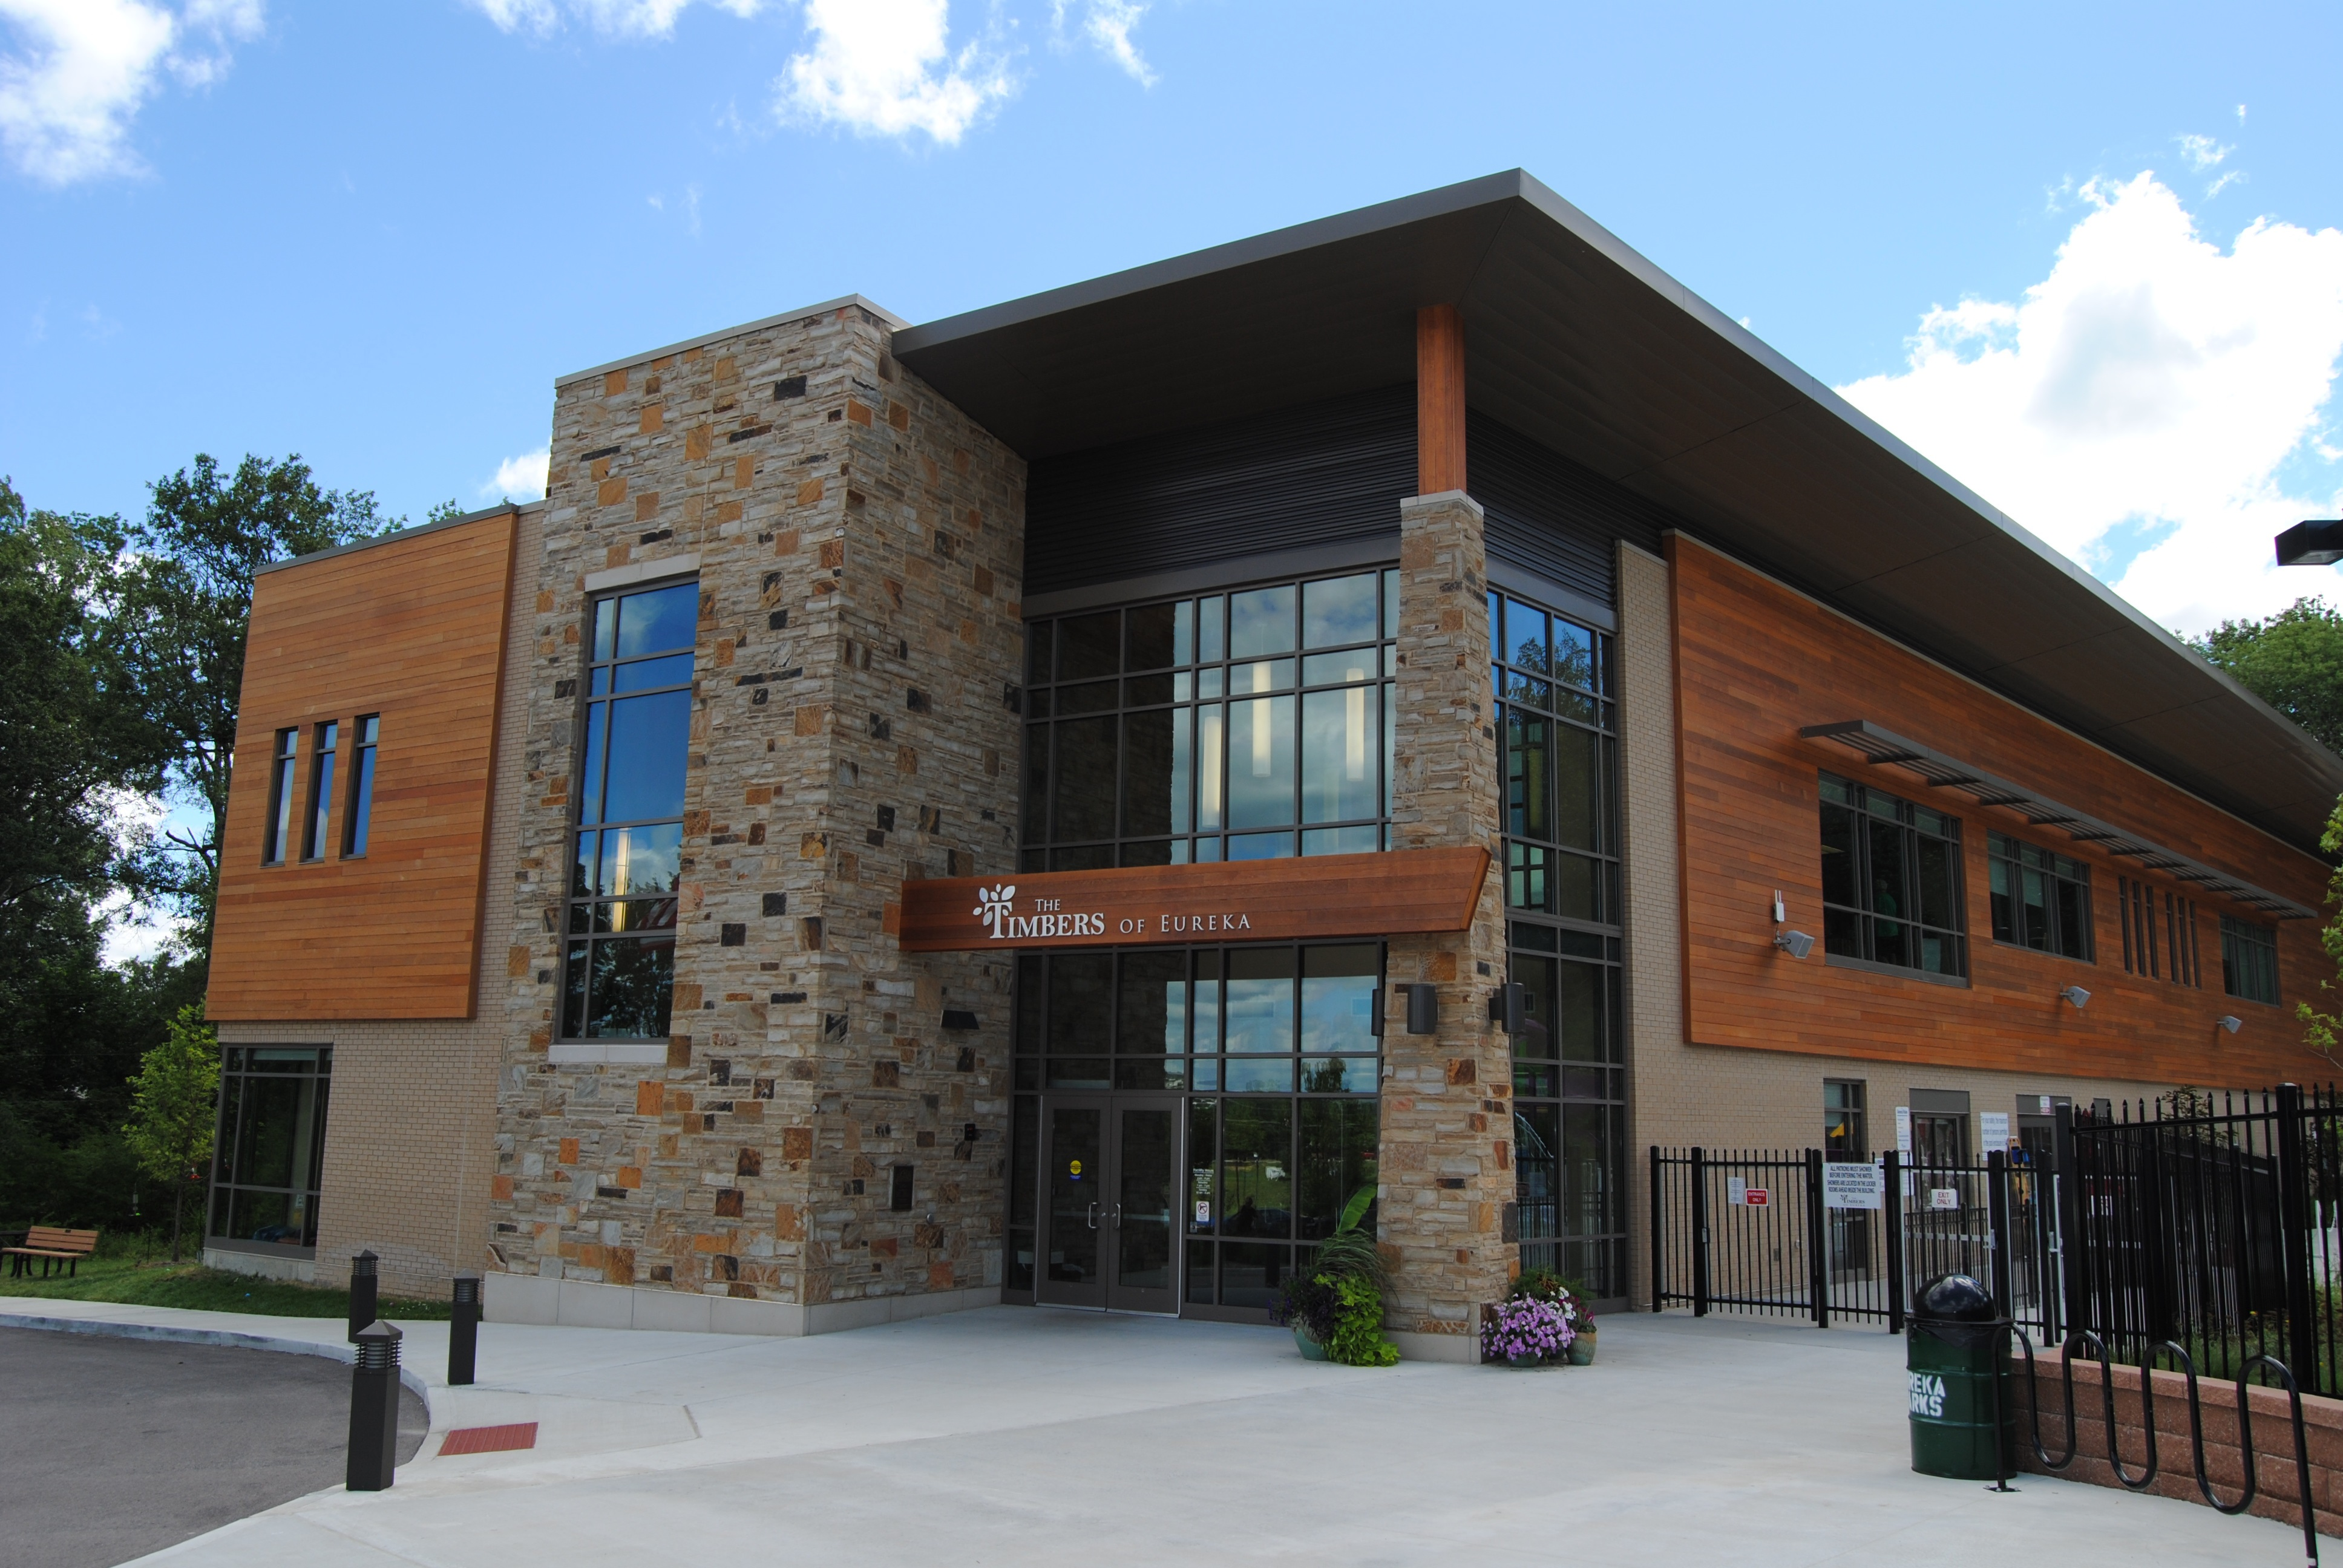 The Timbers of Eureka Recreation Center Building